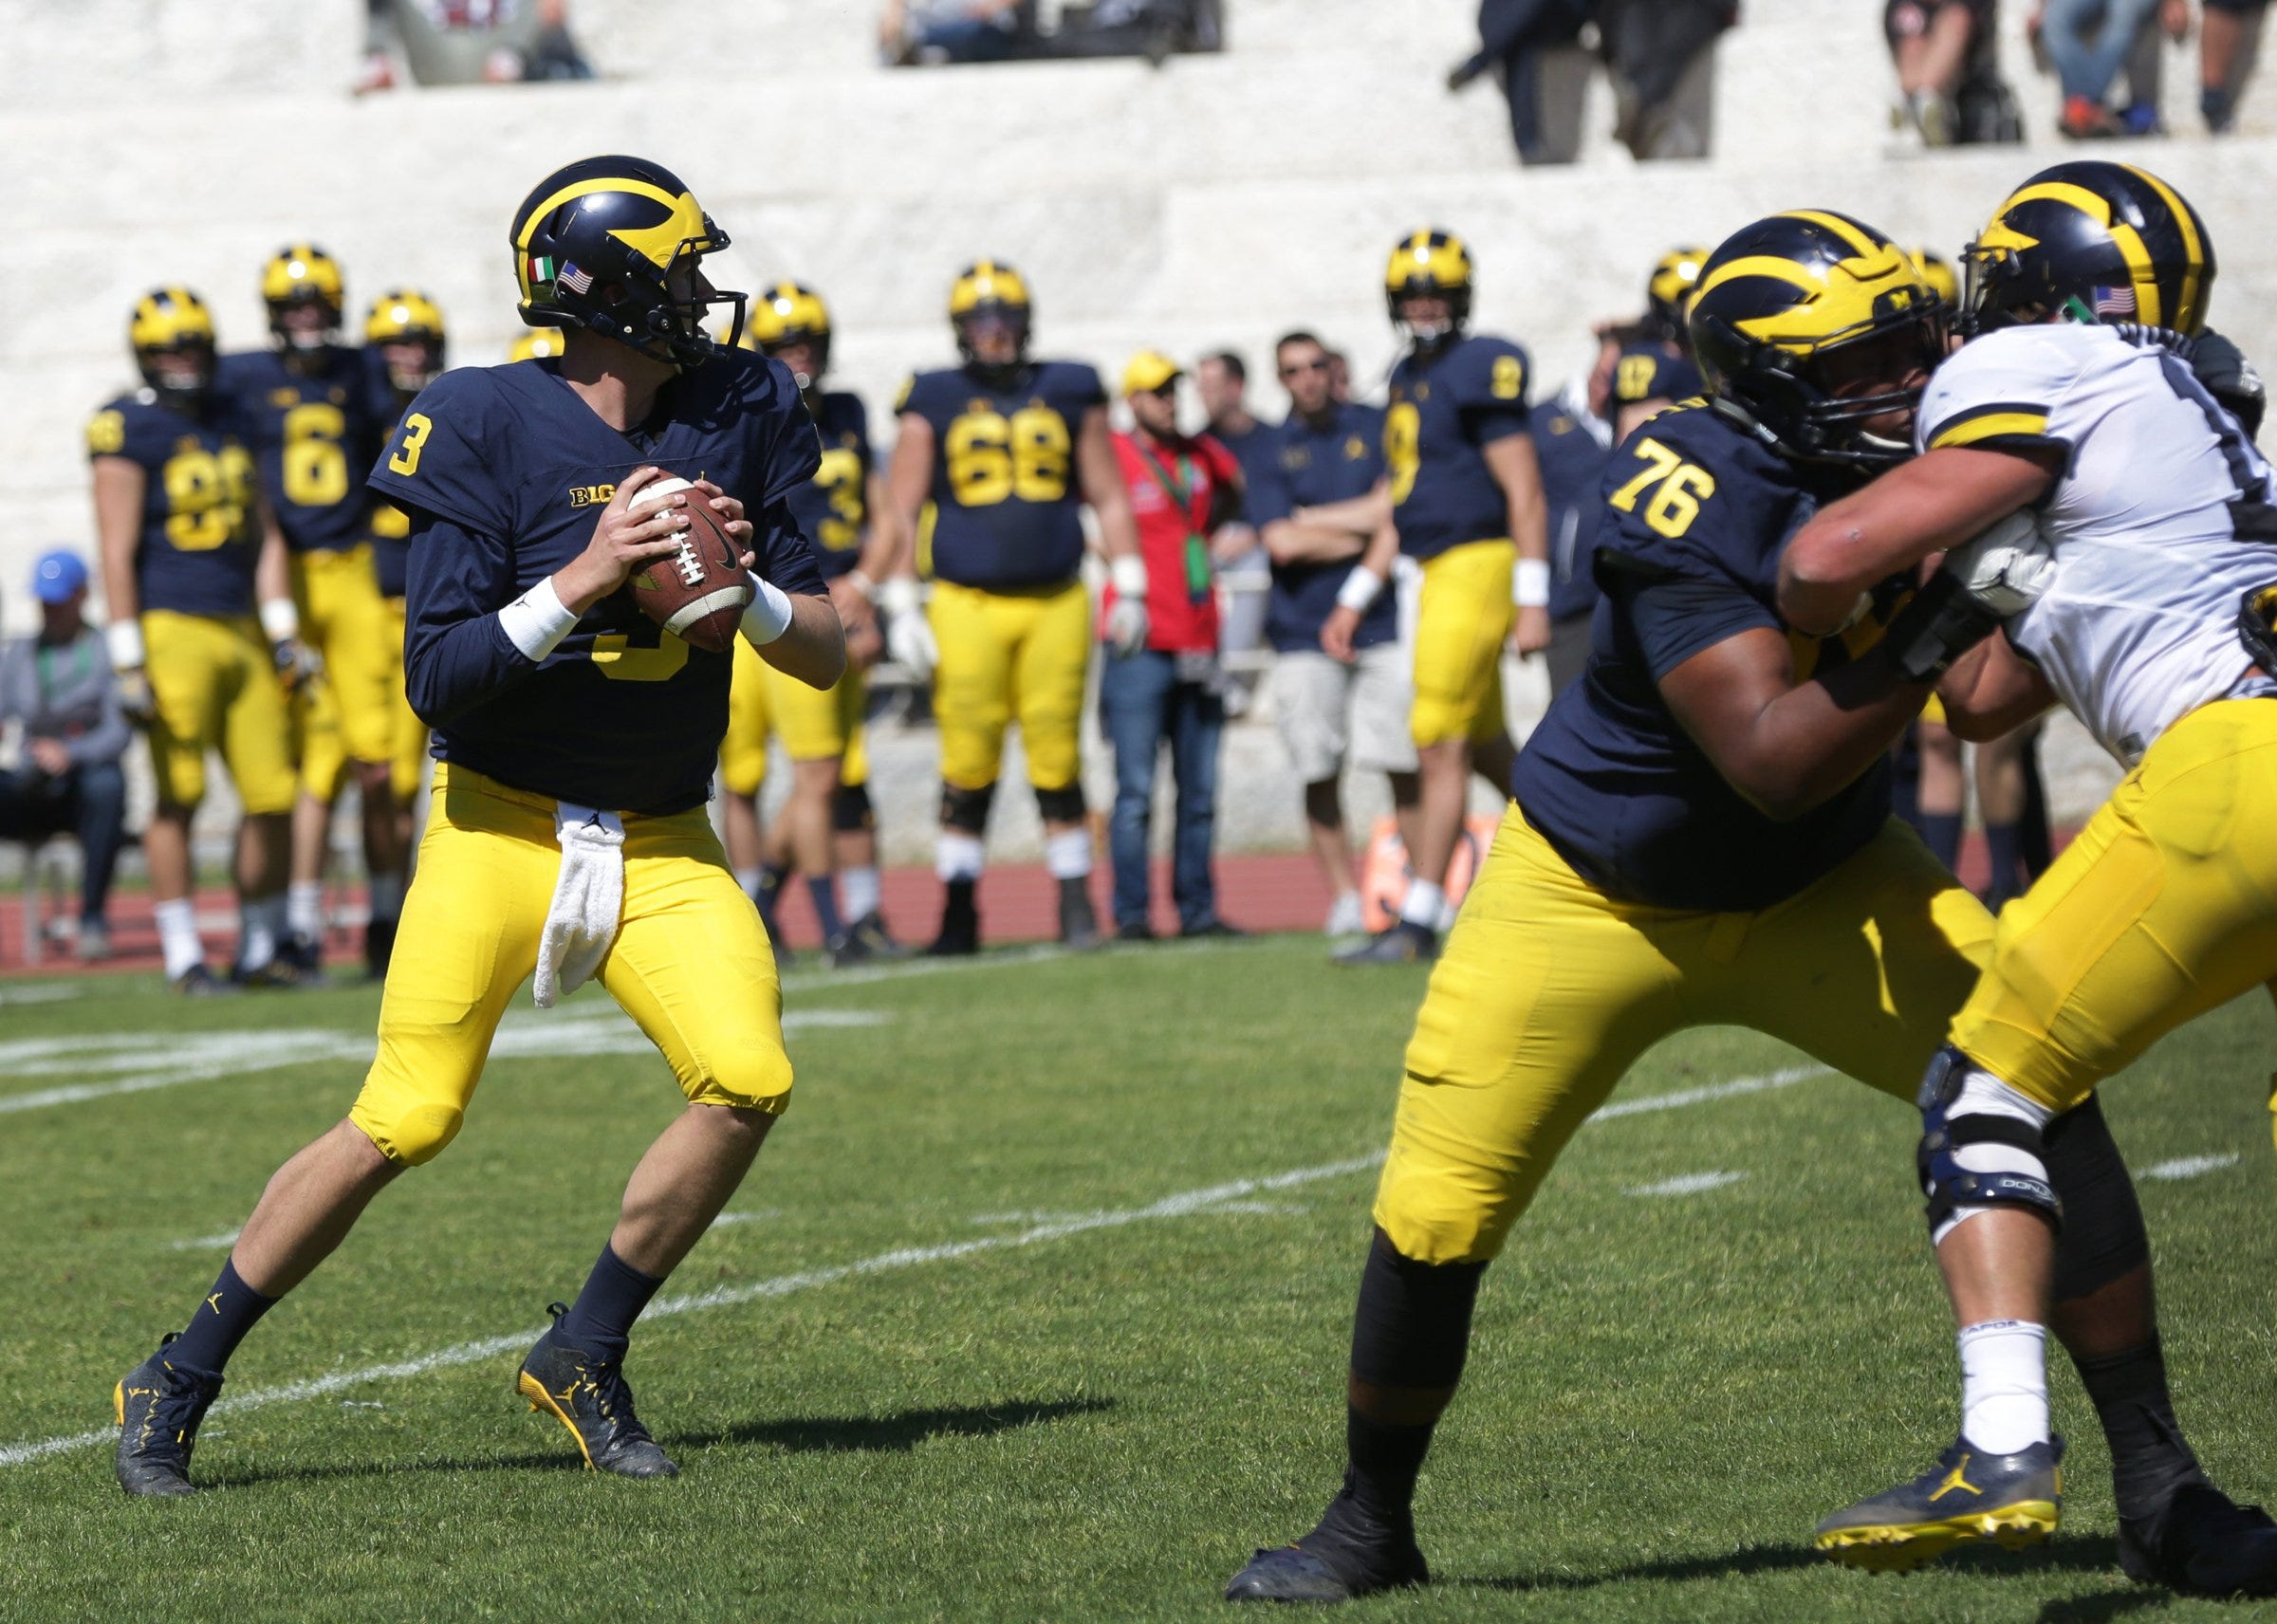 Michigan coach Jim Harbaugh breaks down quarterback race, wishes they could all start